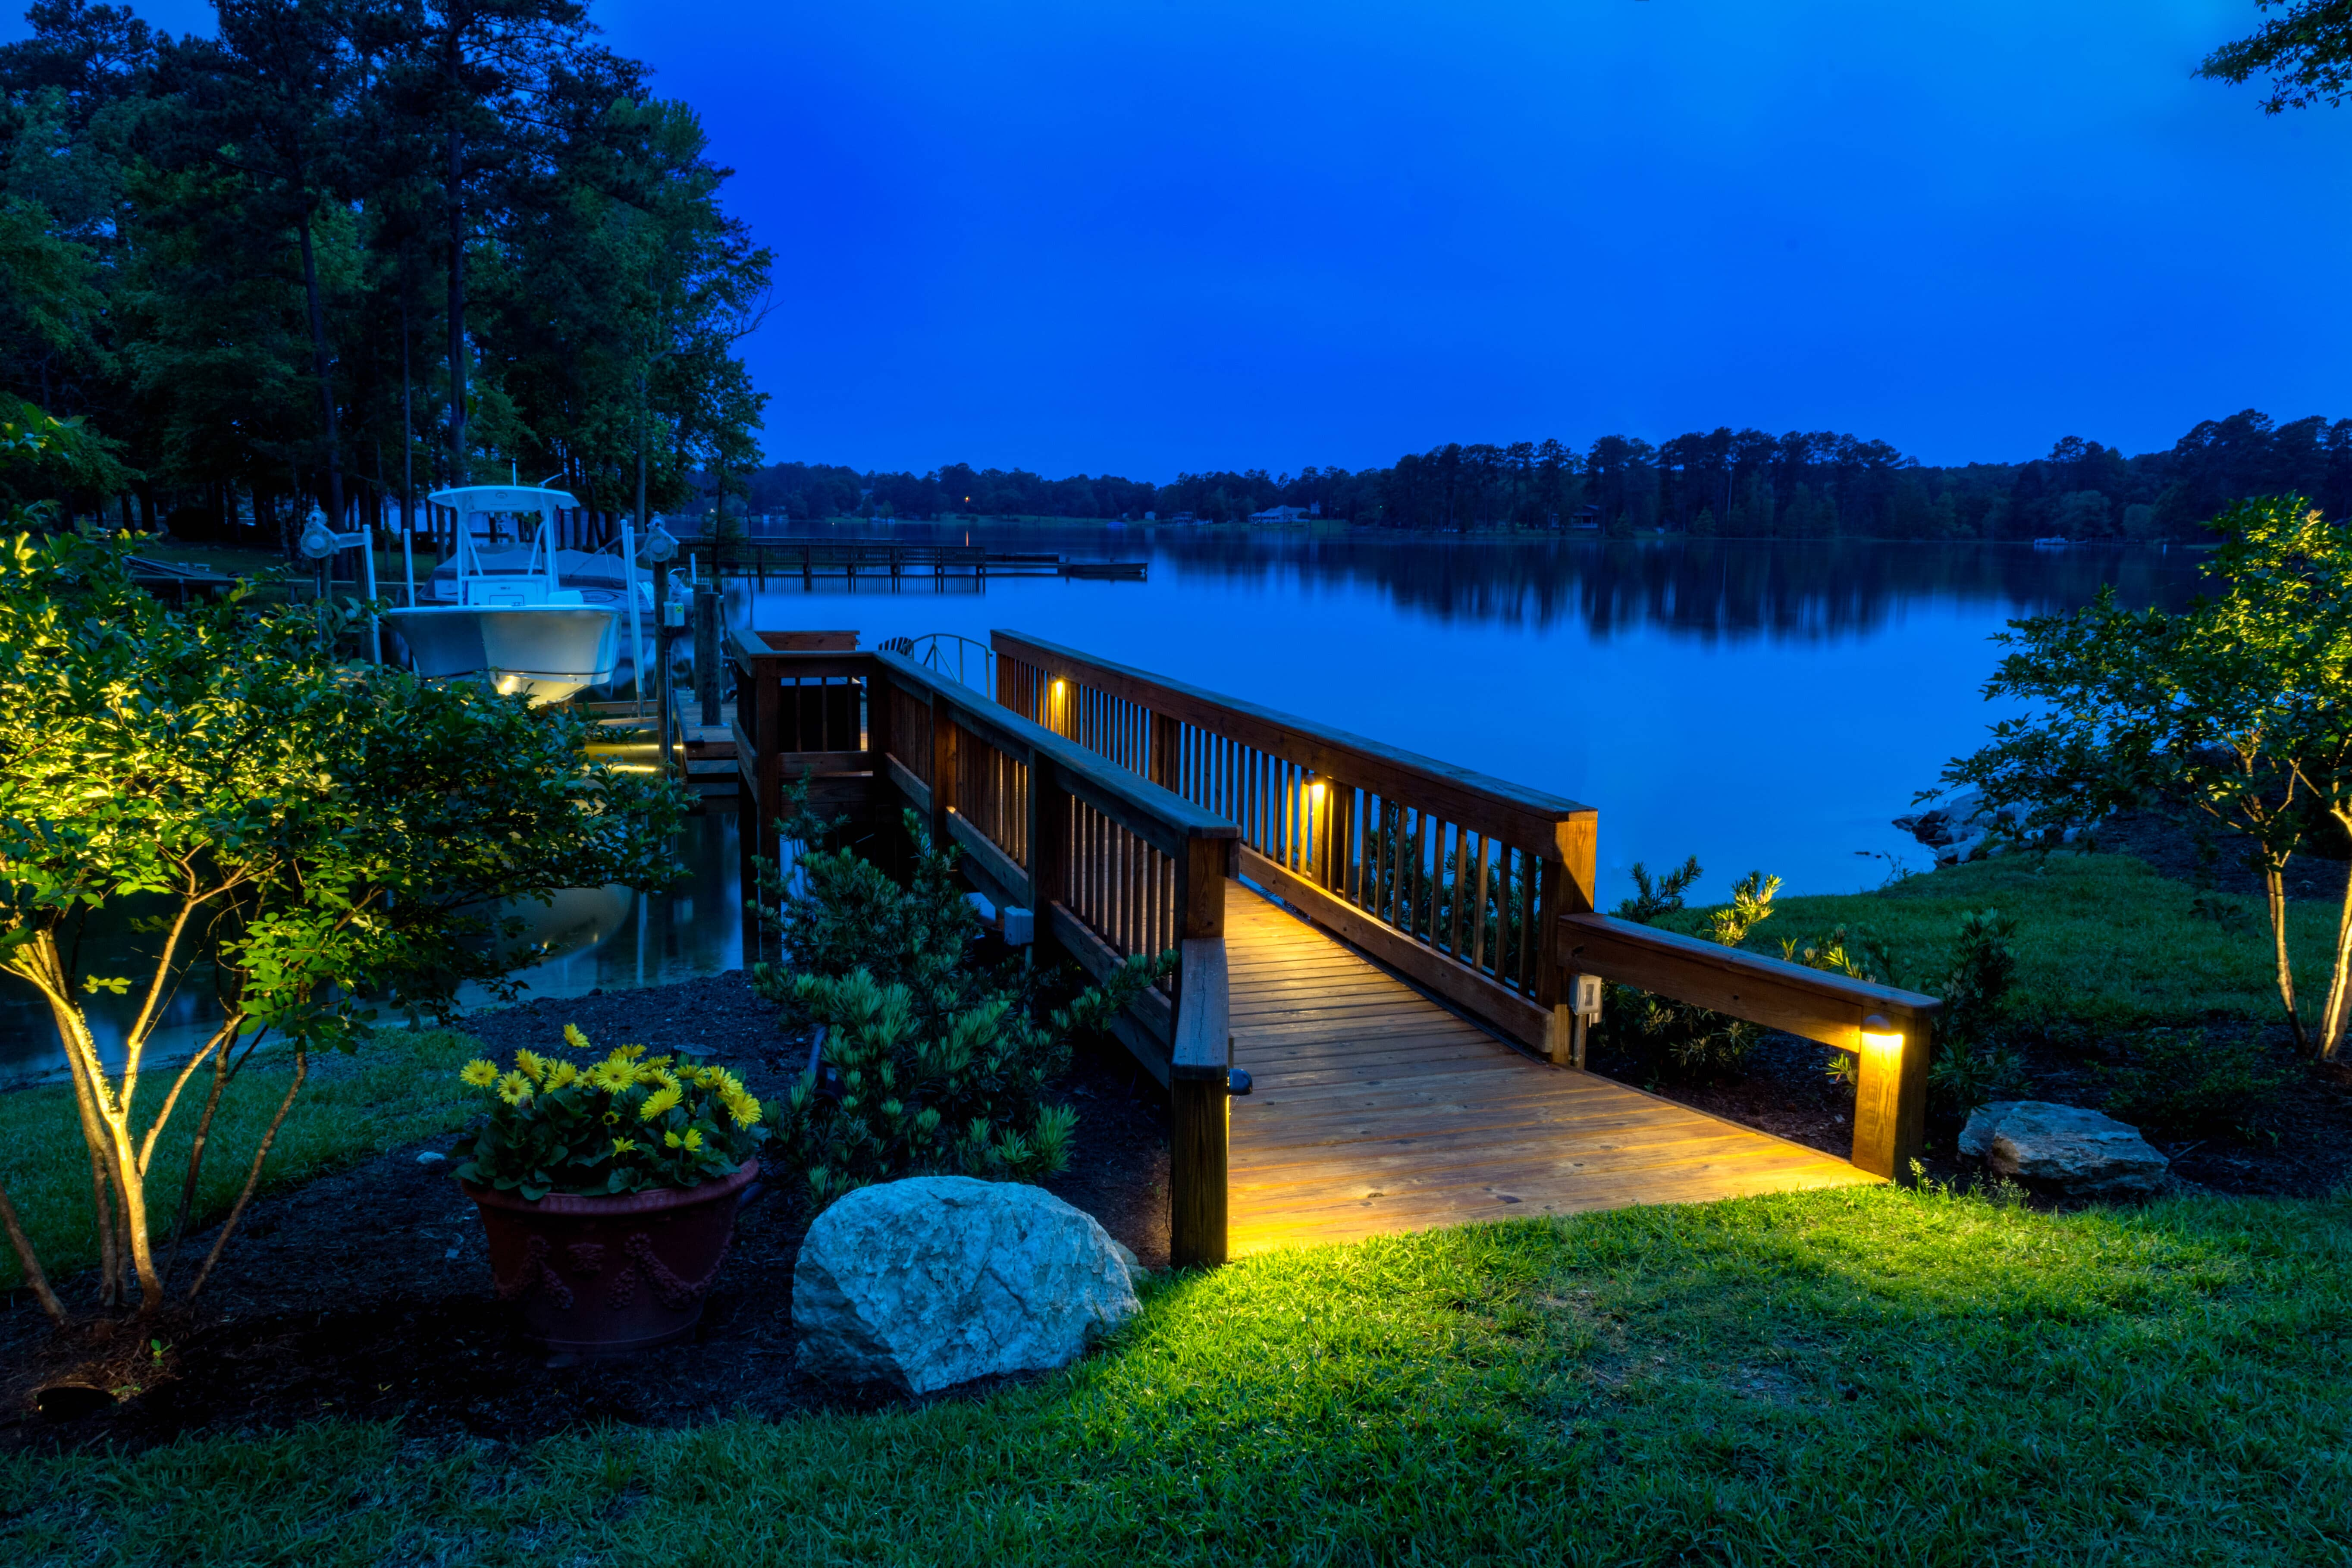 Professional outdoor dock lighting